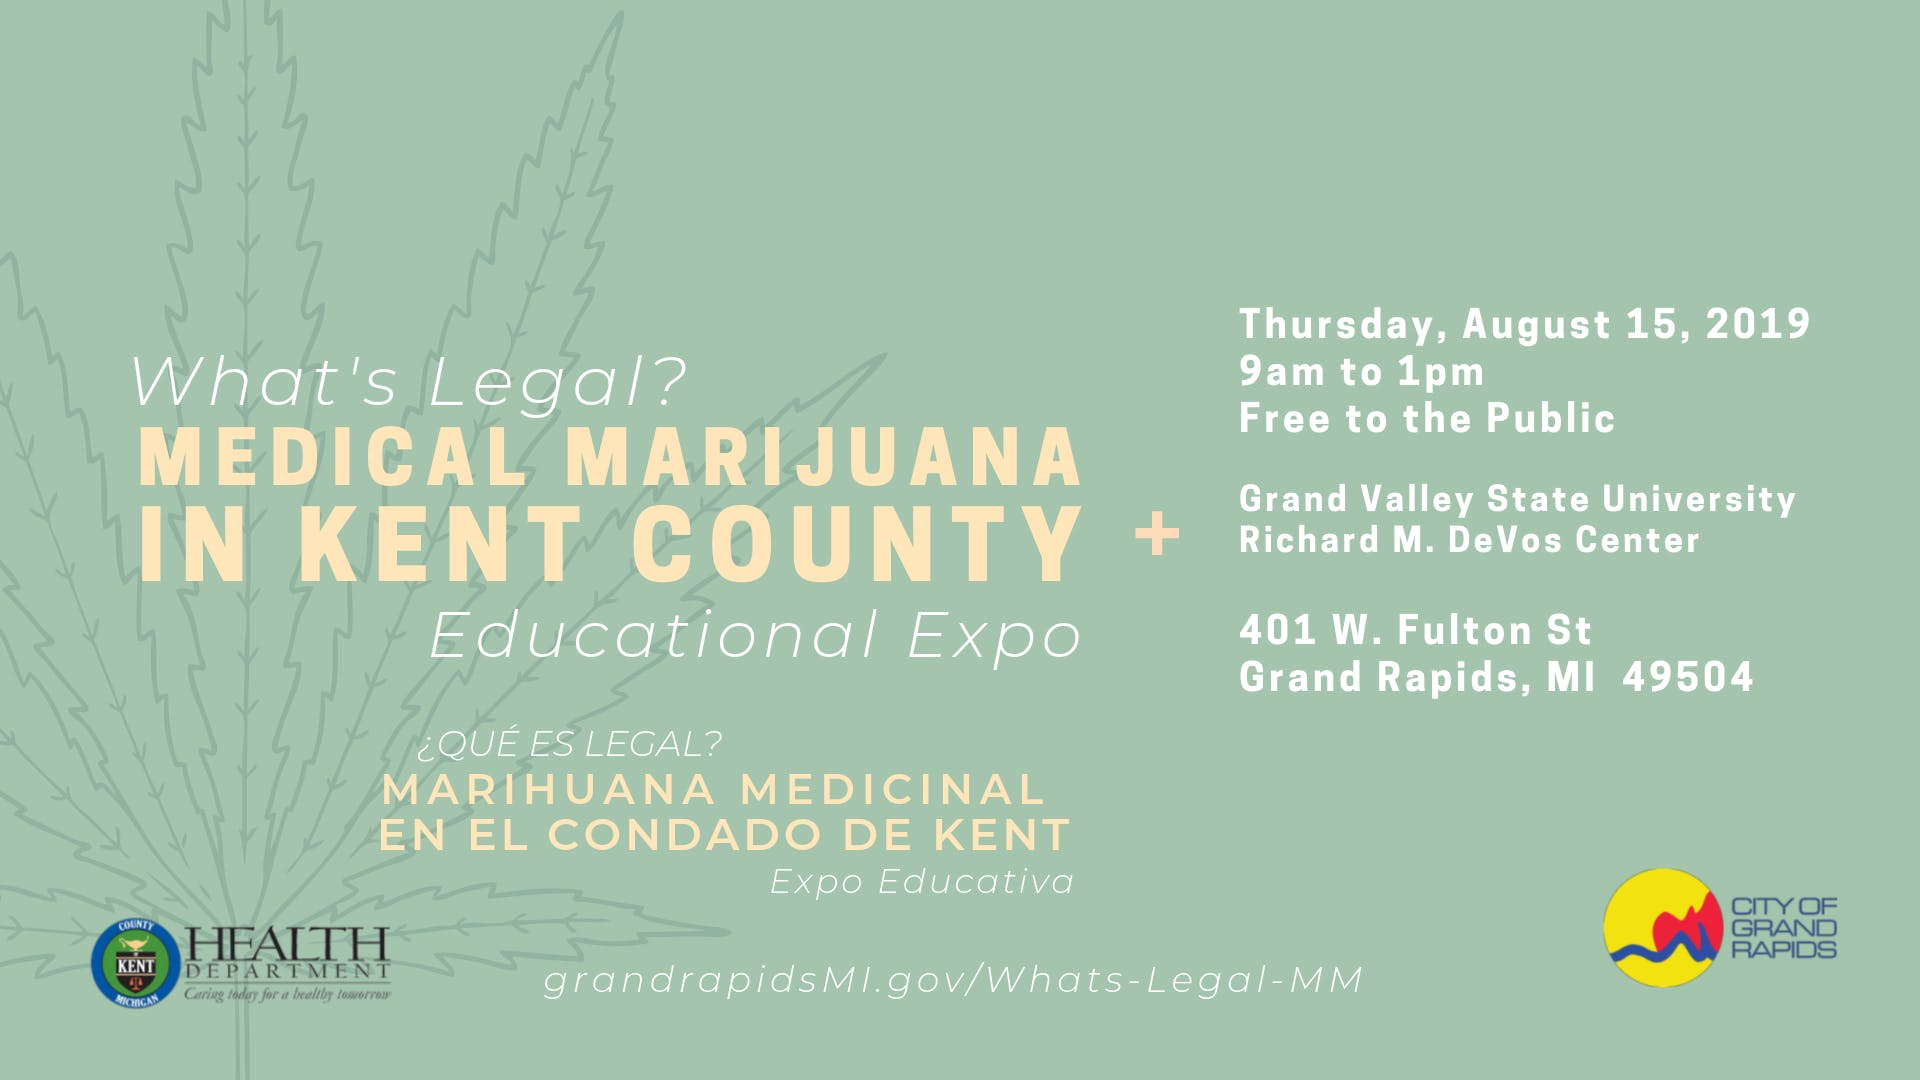 What's Legal? Medical Marijuana in Kent County  Educational Expo banner